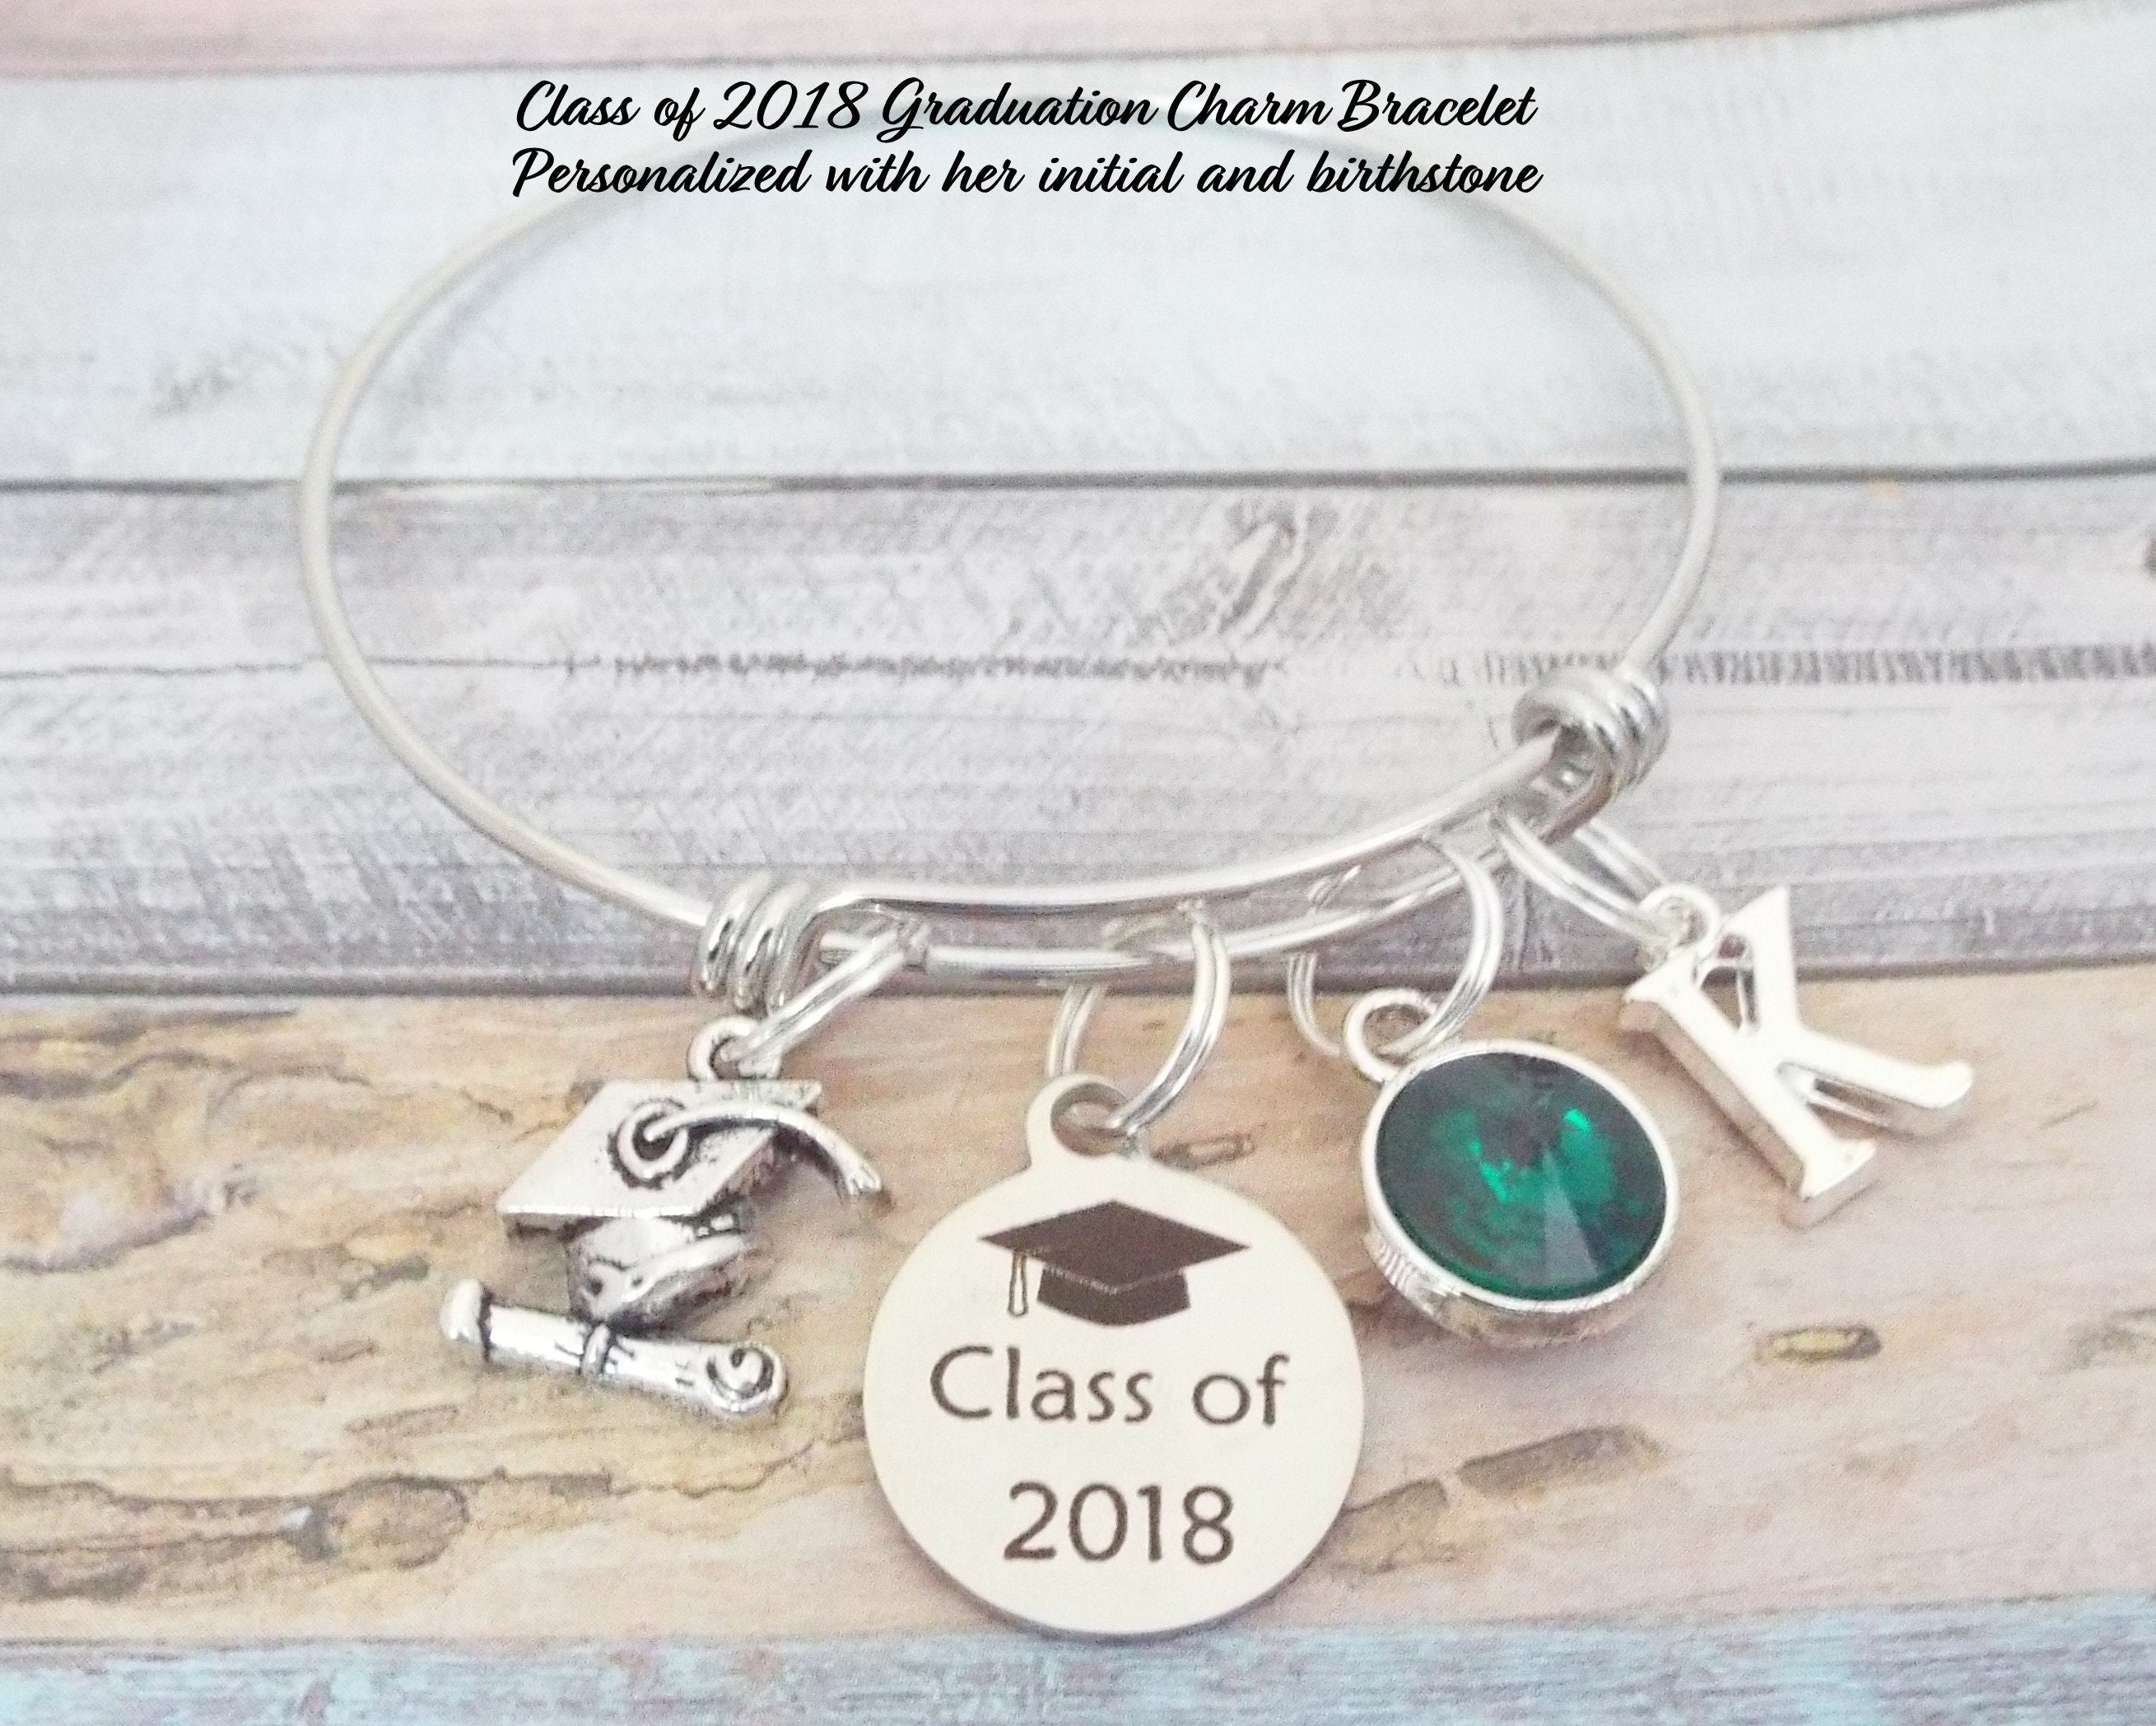 petitewheatonbraceletcollage designer wheaton yurman ideas graduation gift david petite indianapolis designs bracelet jewelry